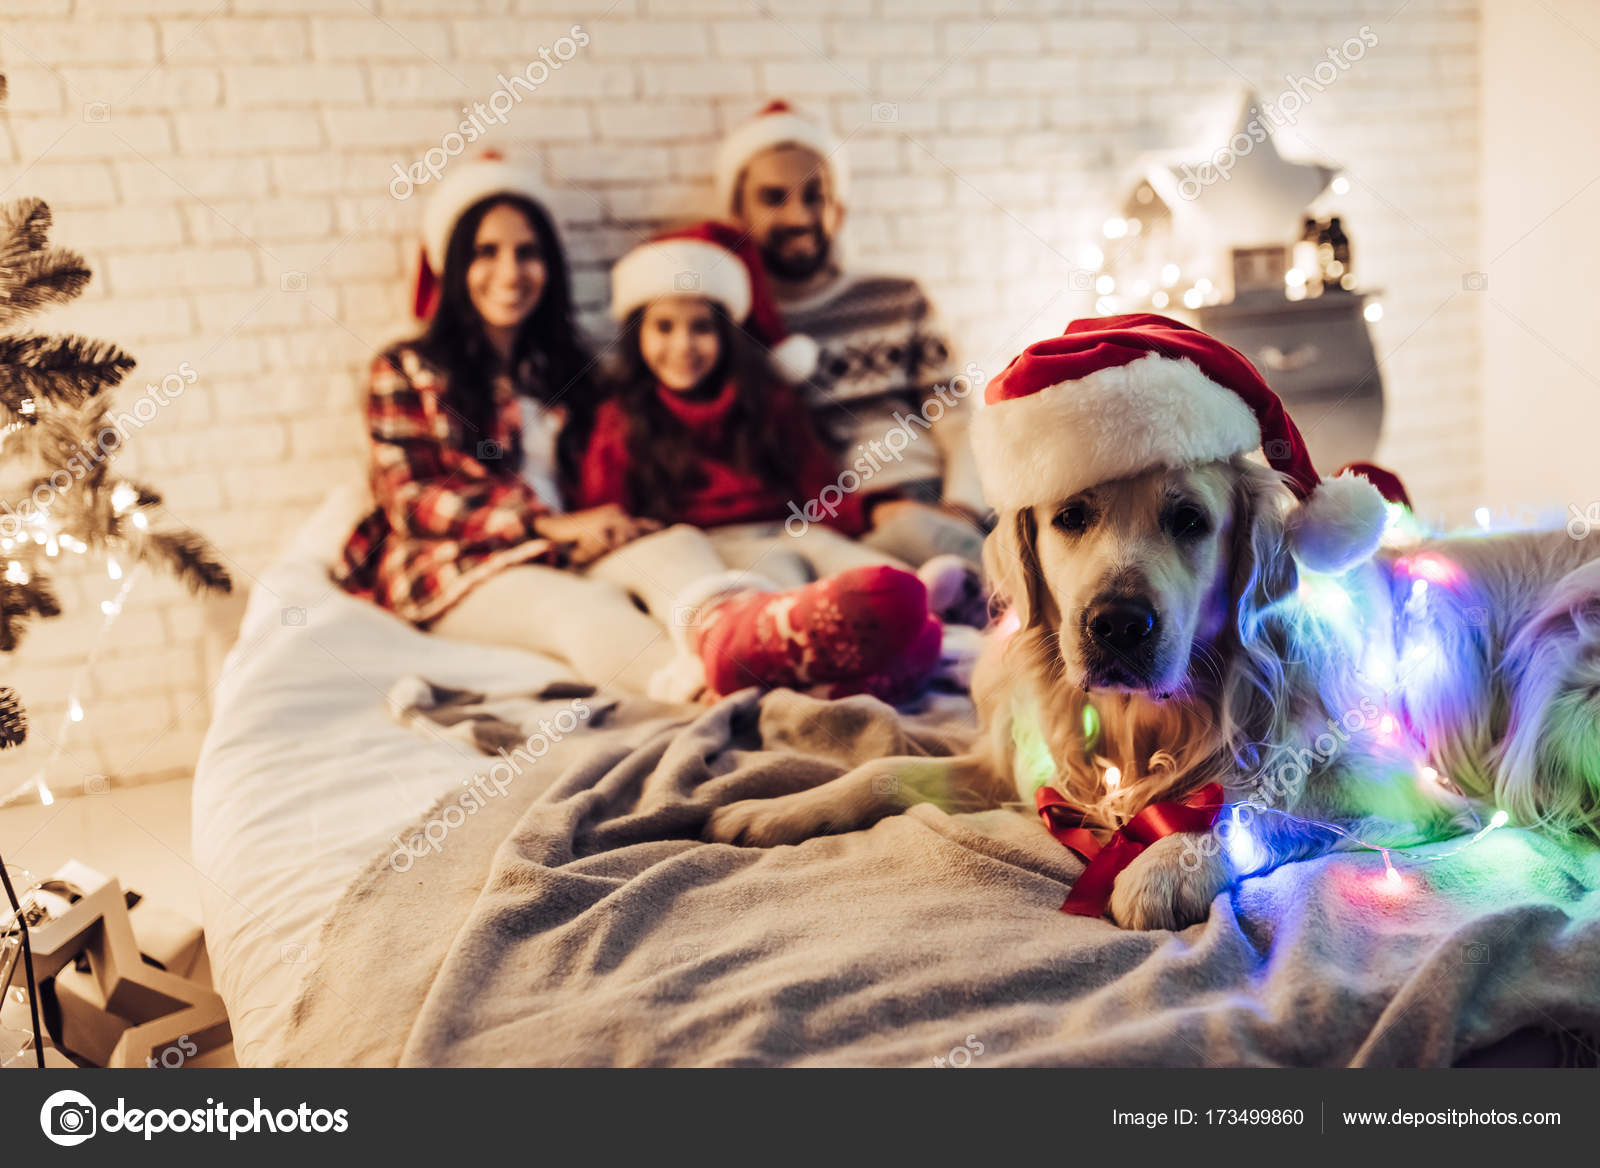 A Letto Con Eva.Family With Dog On New Year S Eve Stock Photo C 4pmphoto